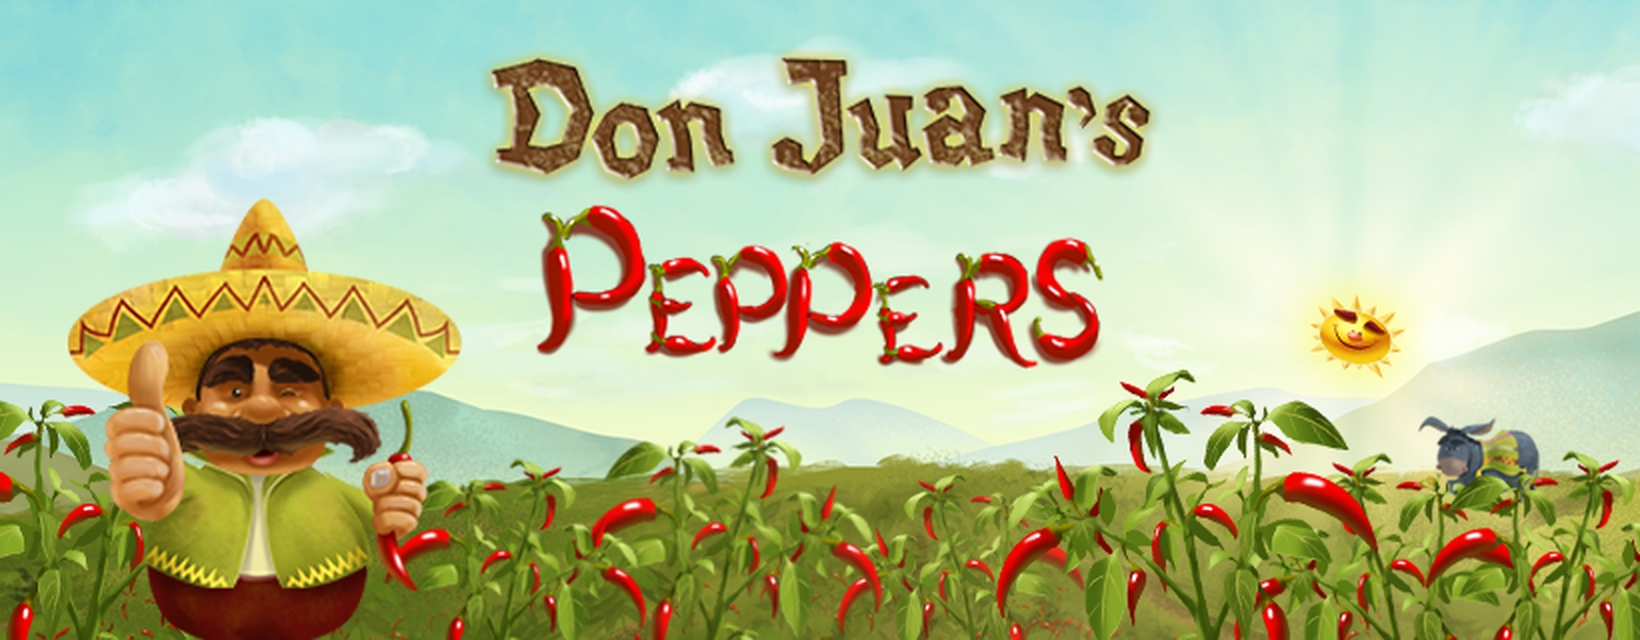 The Don Juan's Peppers Online Slot Demo Game by Tom Horn Gaming